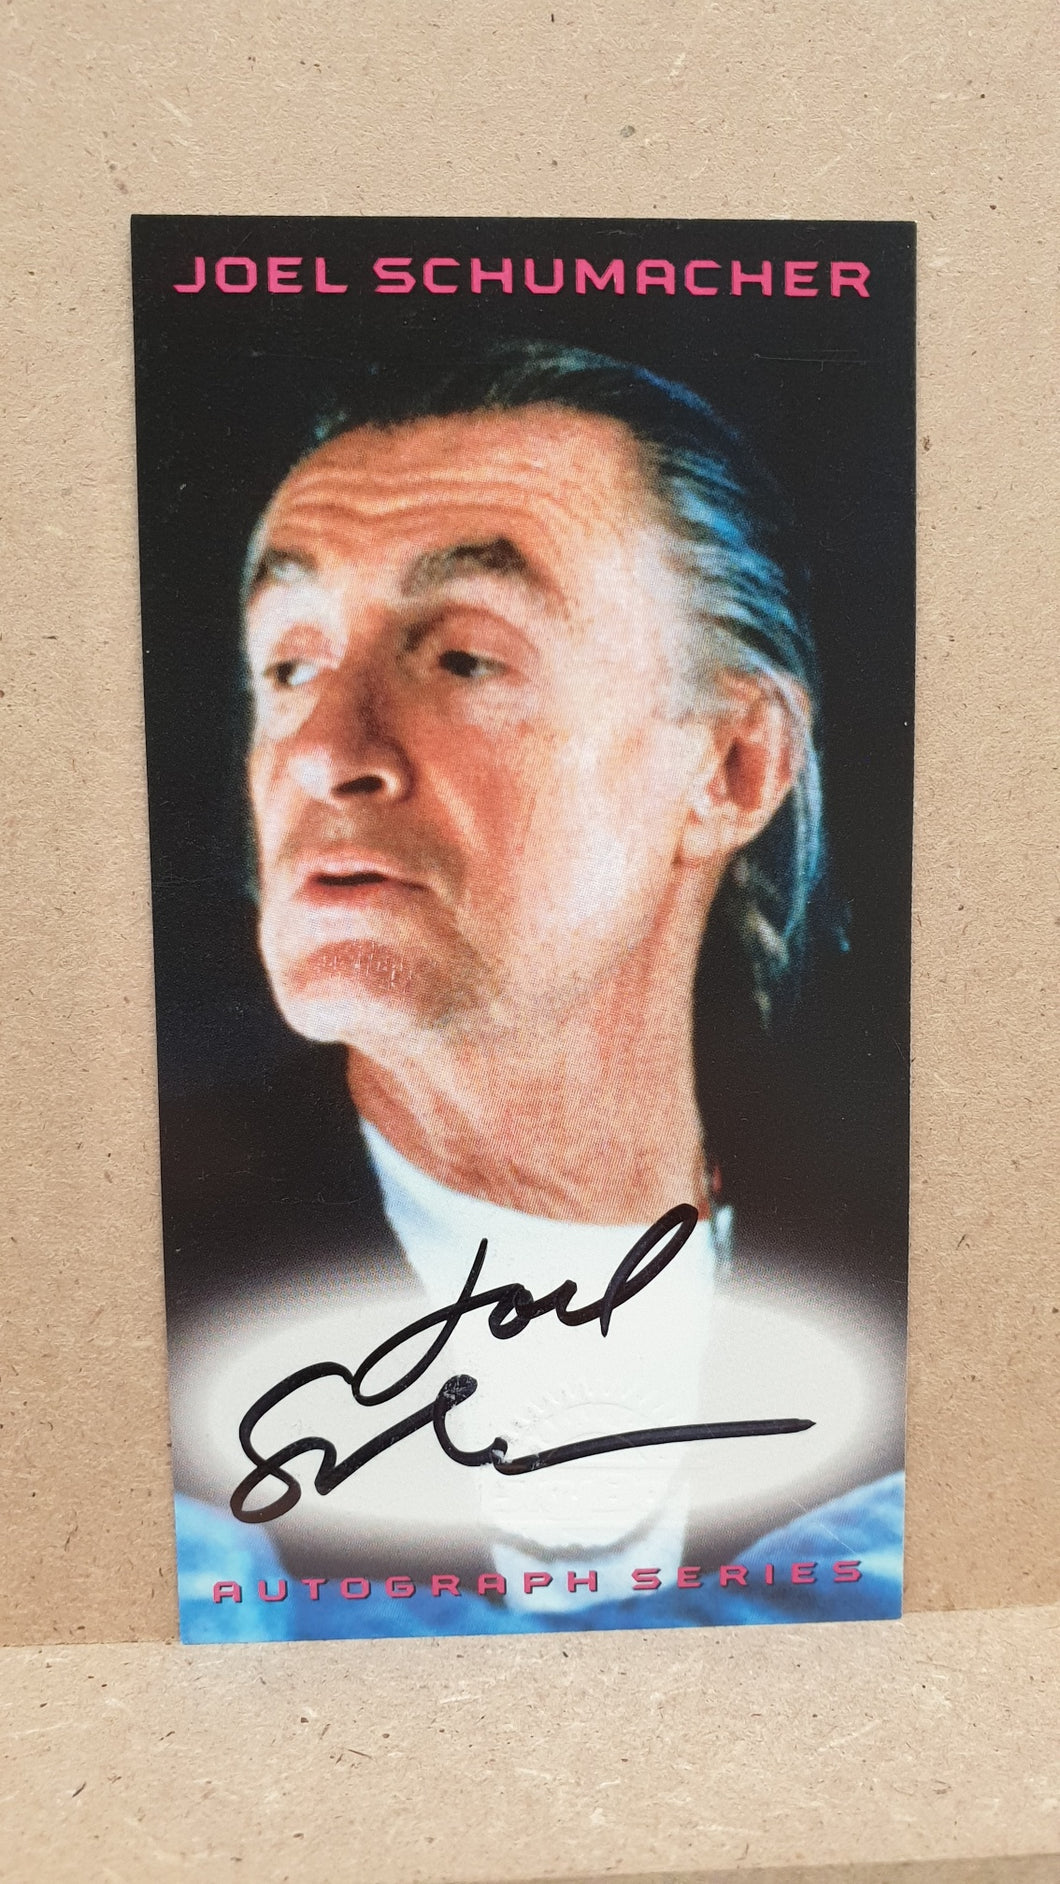 Autographed Trading Card: Joel Schumacher